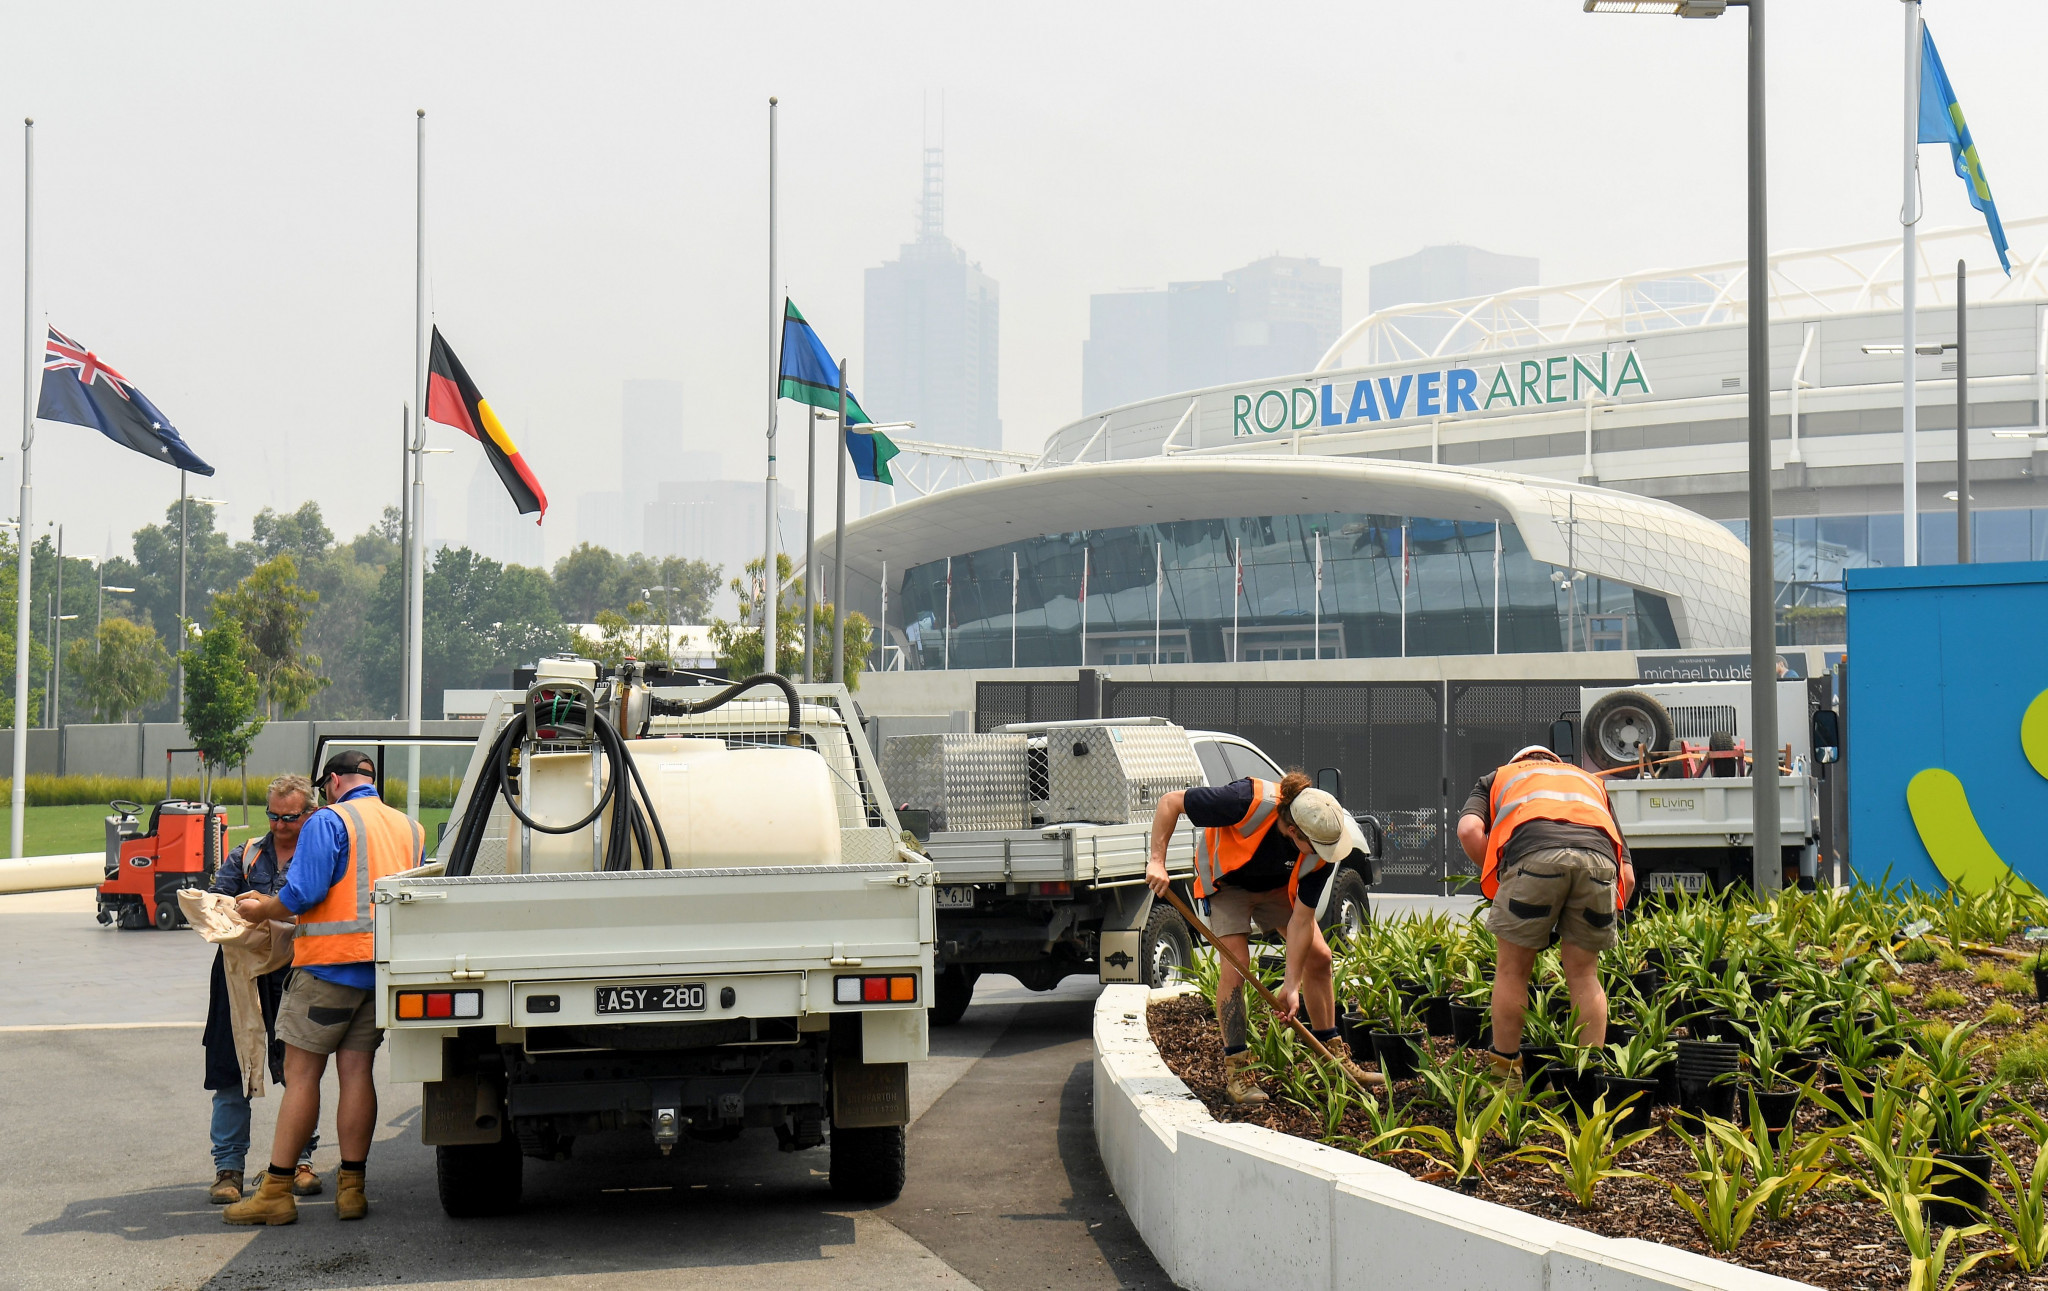 A smoky haze descended on Rod Laver Arena earlier this week, leaving doubts over whether the Australian Open will go ahead as planned ©Getty Images